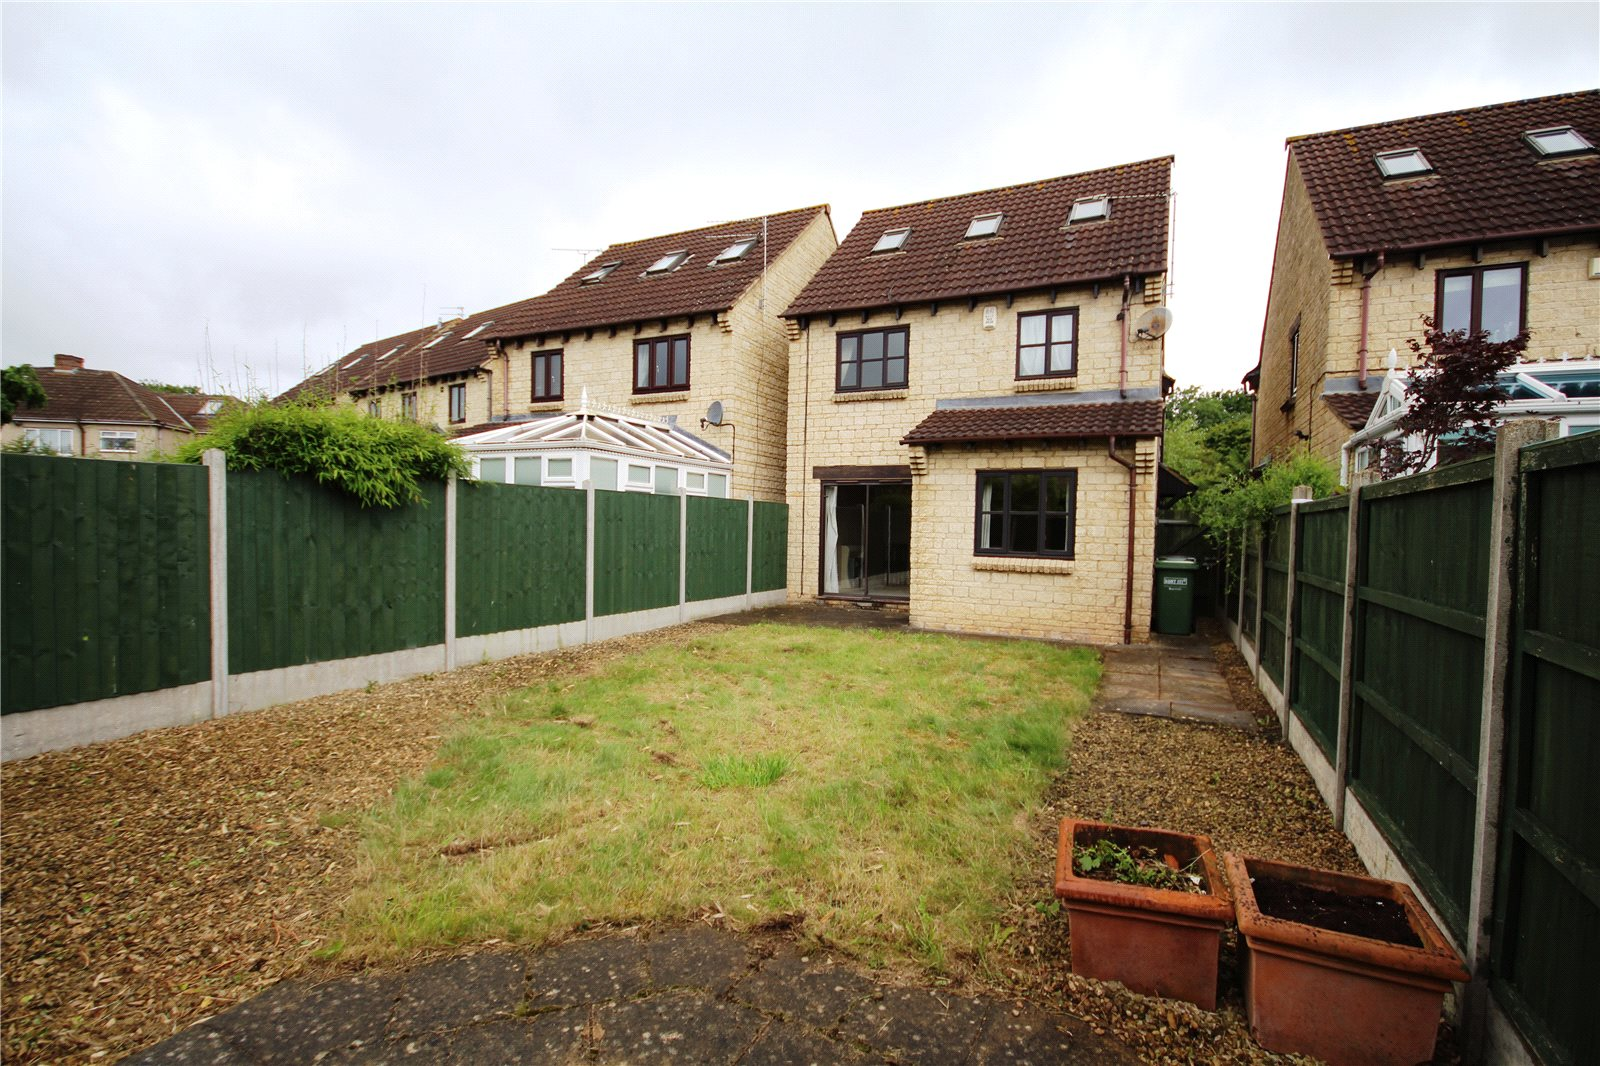 Cj Hole Downend 4 Bedroom House For Sale In Bromley Heath